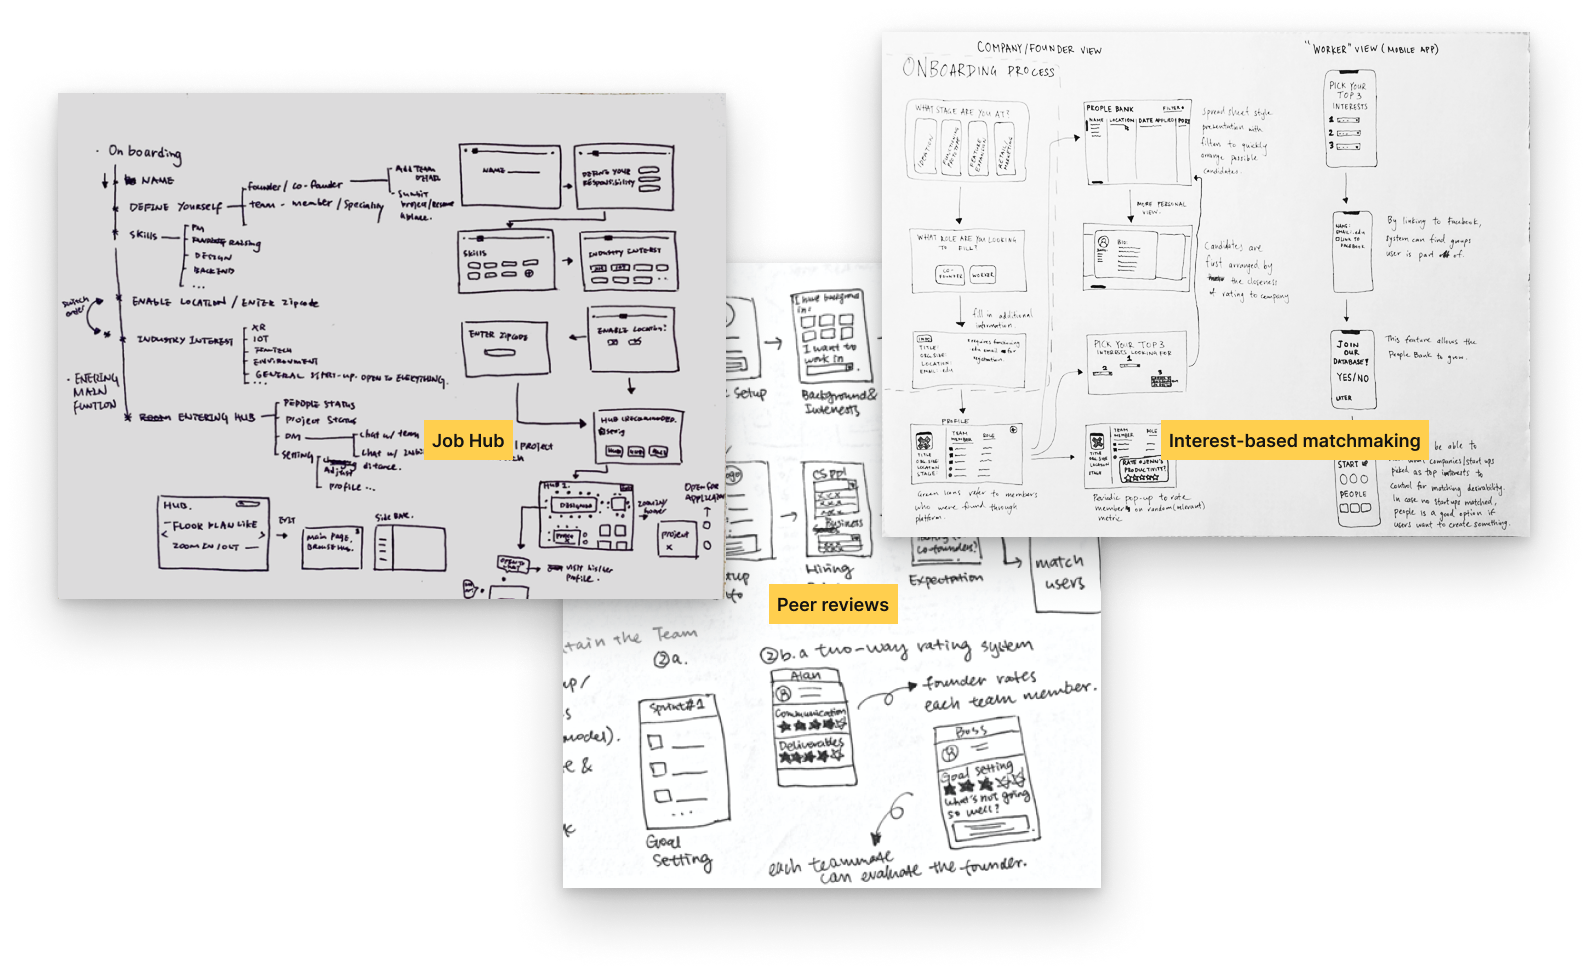 A compilation of three sketches that contain the three design directions – job hub, peer reviews, and interest-based matchmaking.